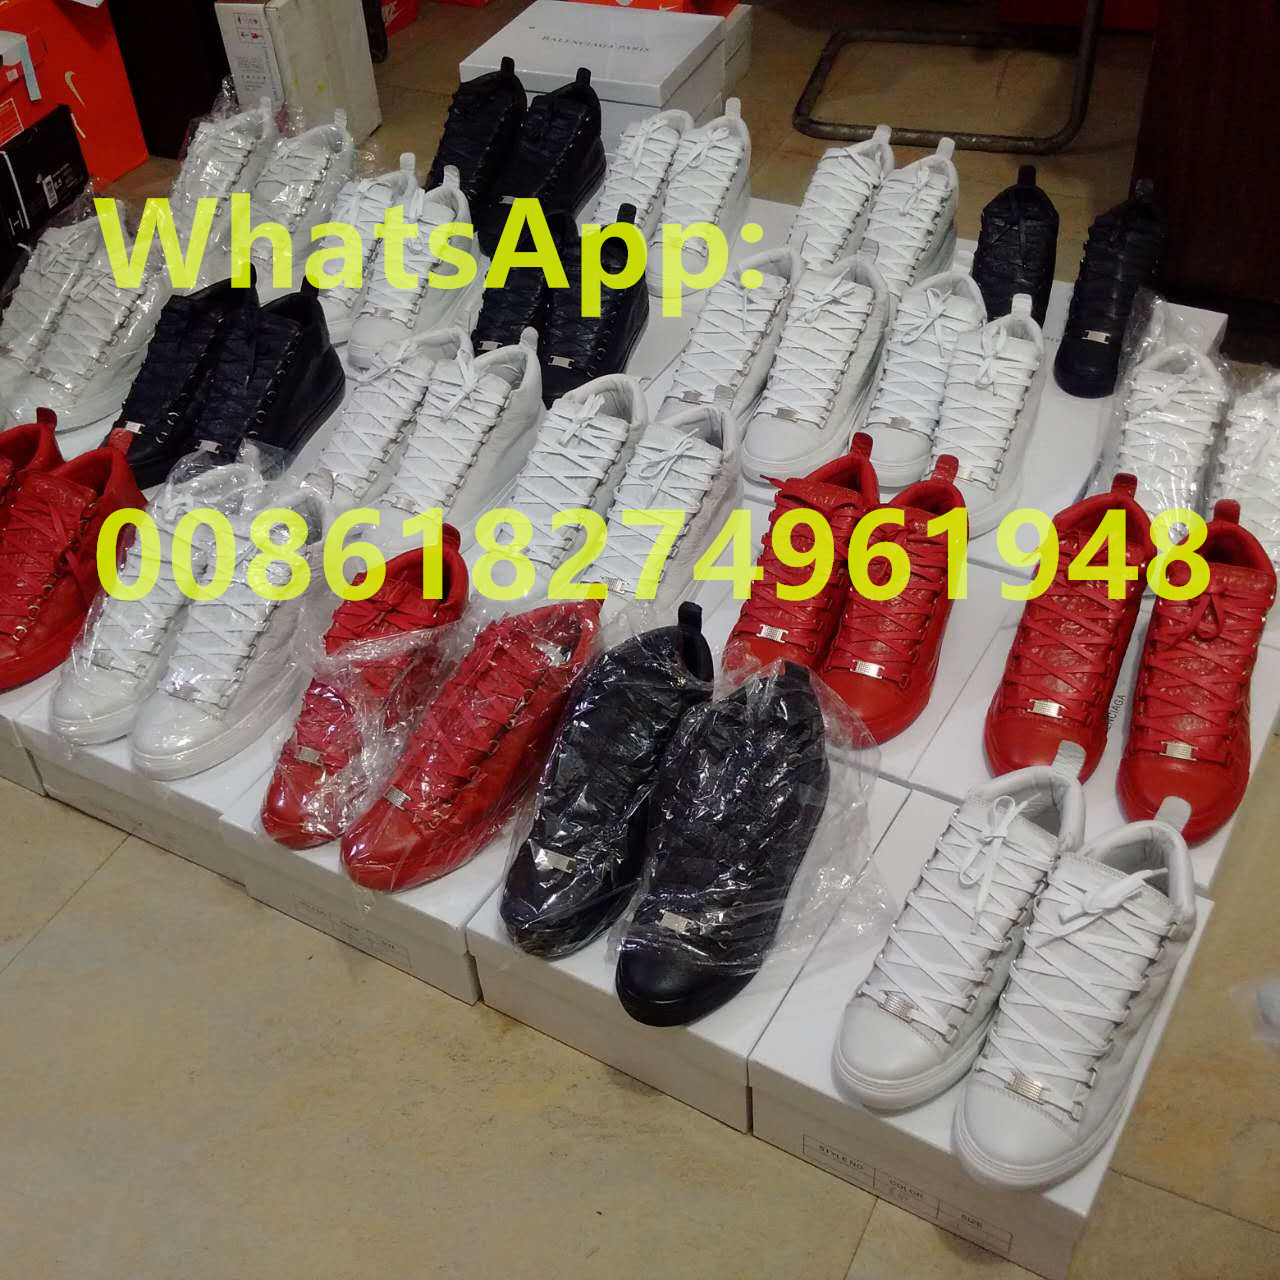 Cheap sneaker nike,adidas,dress shoes,Balenciaga Arena Sneaker, Wholesale  and retail both accept!Yupoo Ablum shoes,Qiqifashion site